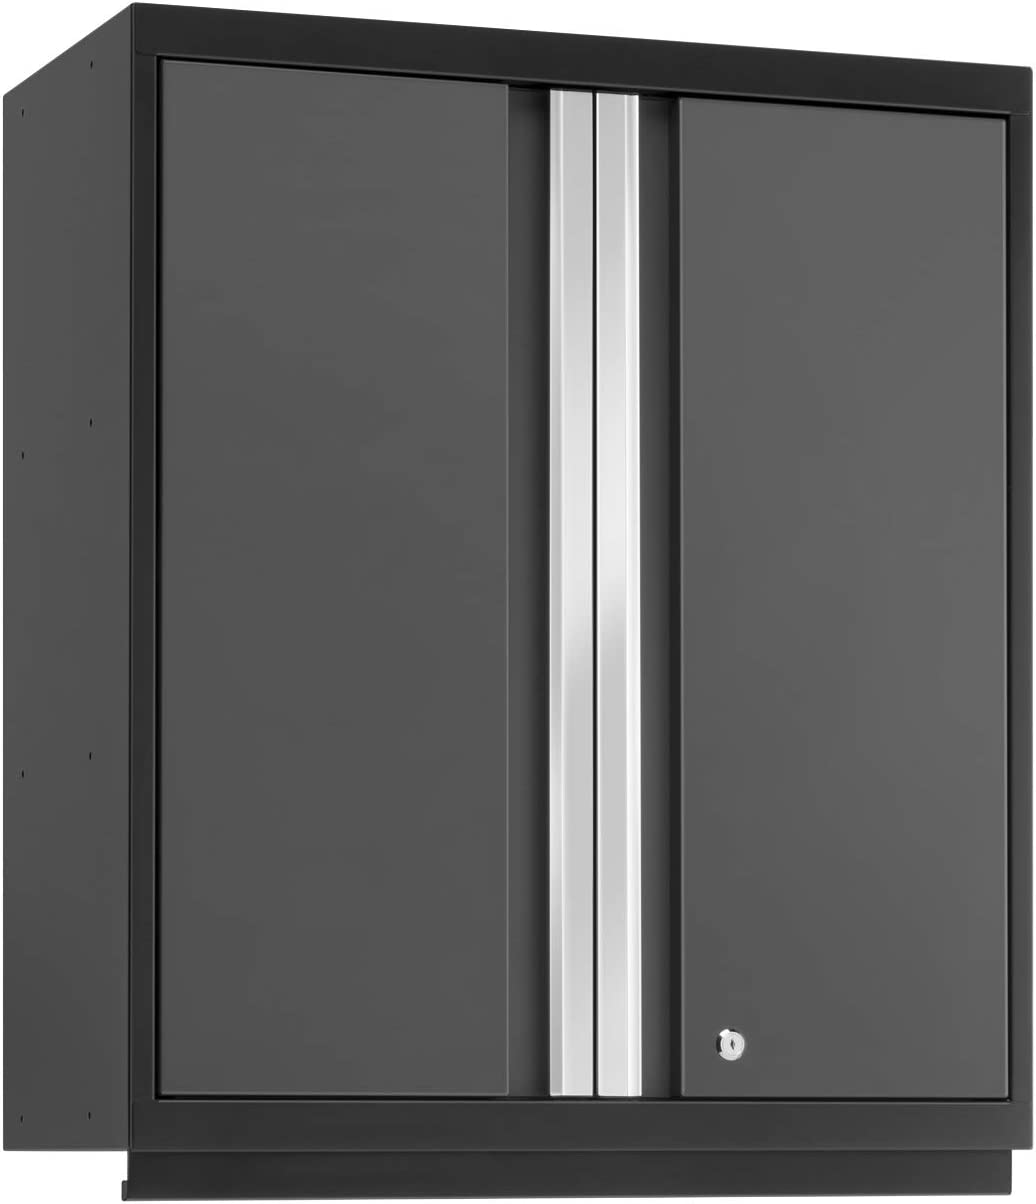 Super special price NewAge Products Pro Gray Tall Discount mail order Cabinet Wall 52015 Garage